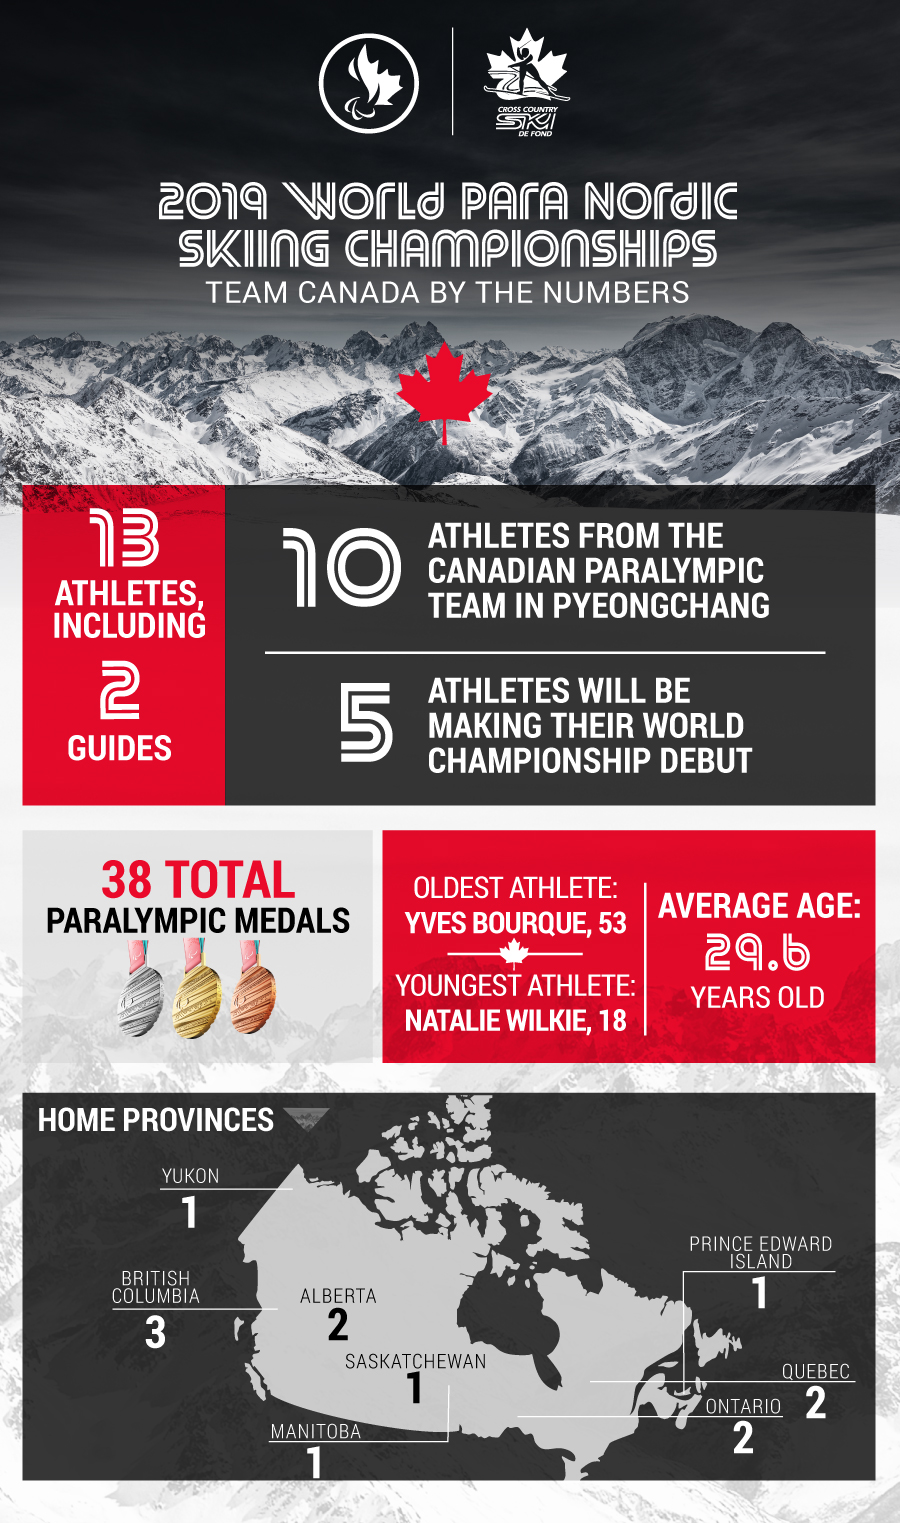 13 athletes will be competing for Canada at the 2019 World Para Nordic Skiing Championships